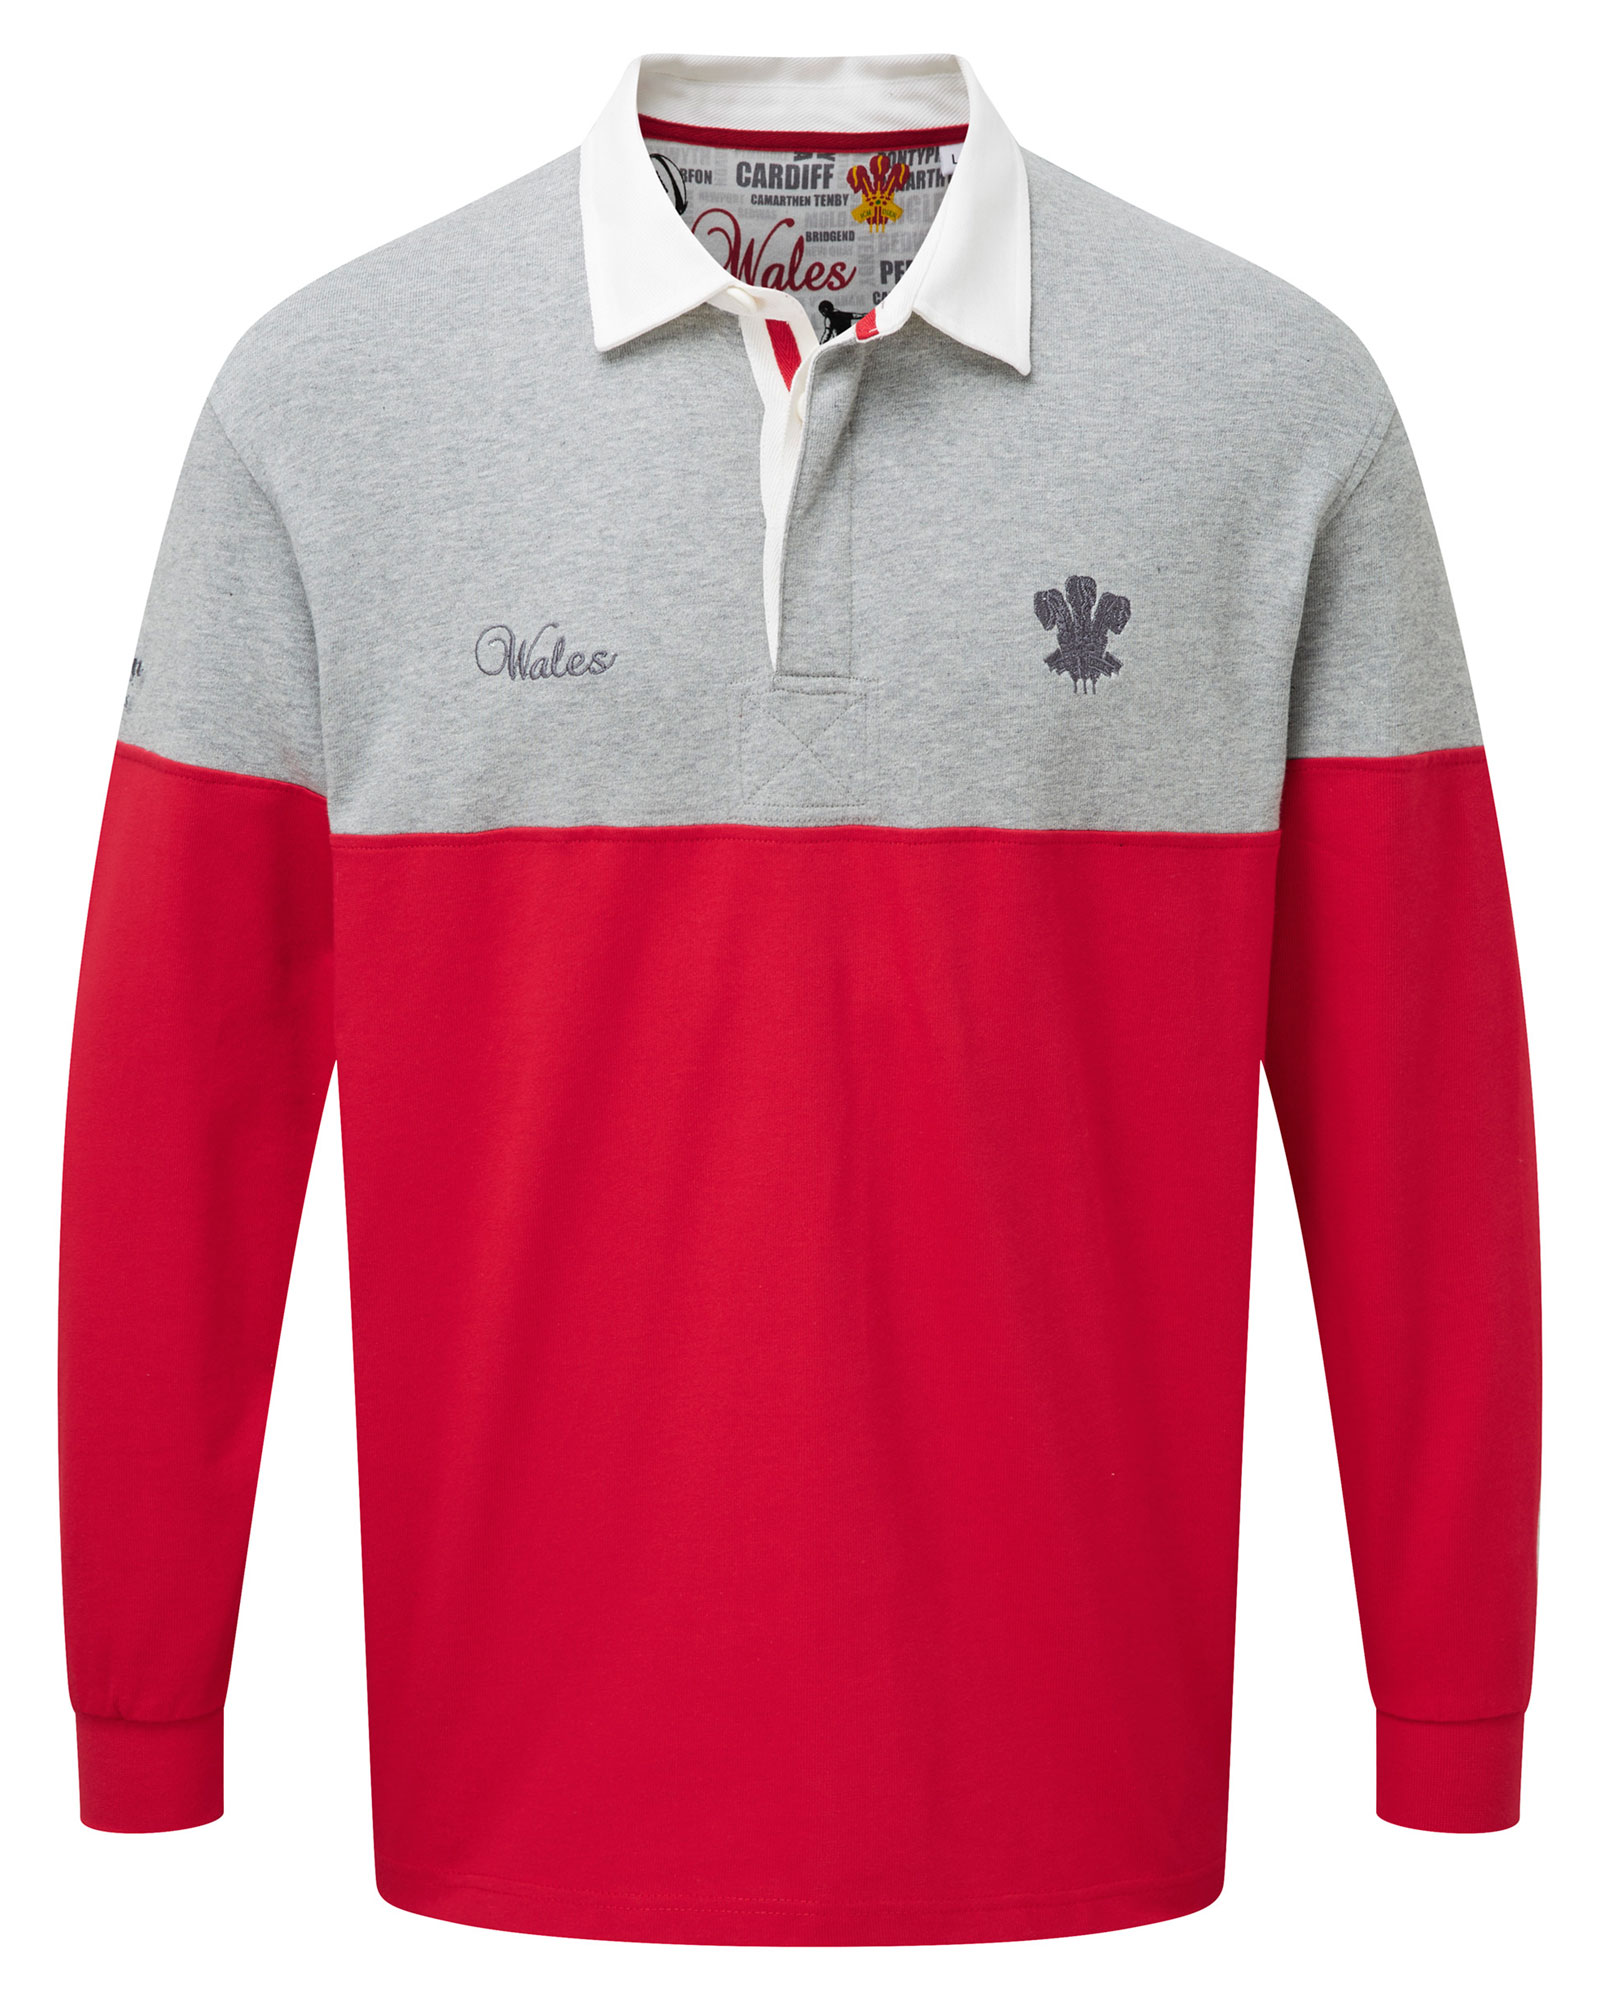 39c572d24c8 Cotton Traders England Rugby Shirt Long Sleeved – EDGE Engineering ...